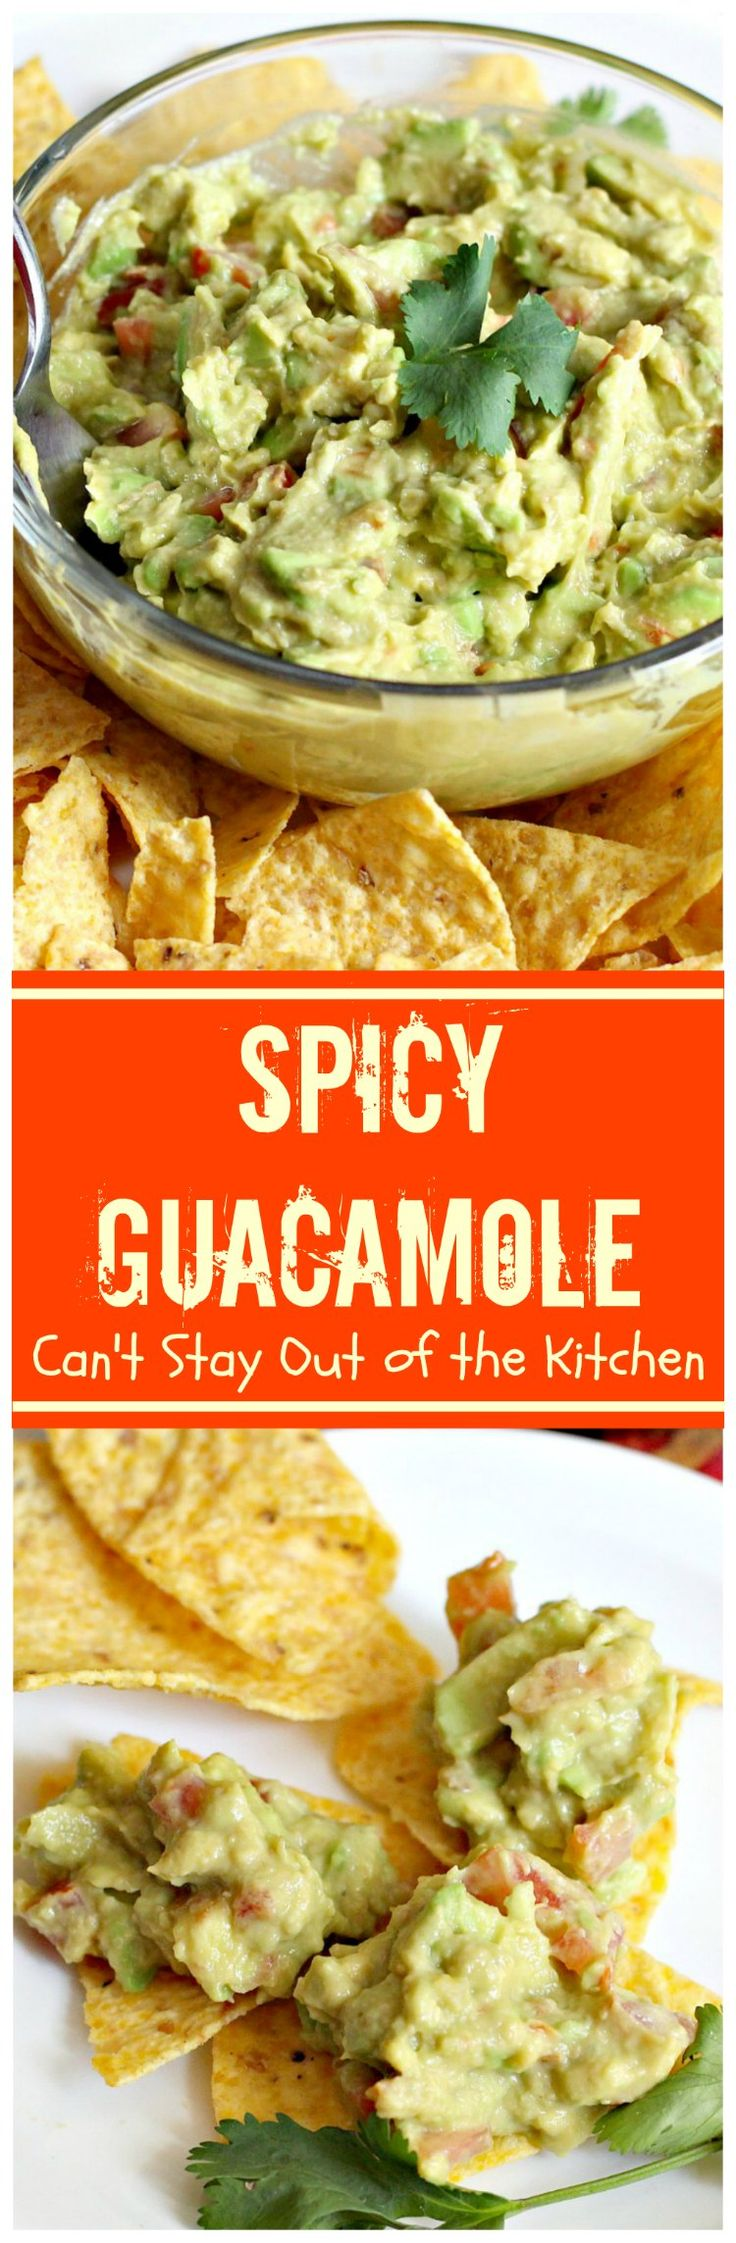 Spicy Guacamole | Can't Stay Out of the Kitchen | fabulous #TexMex #appetizer for #MemorialDay & other summer or holiday fun. #glutenfree #avocados